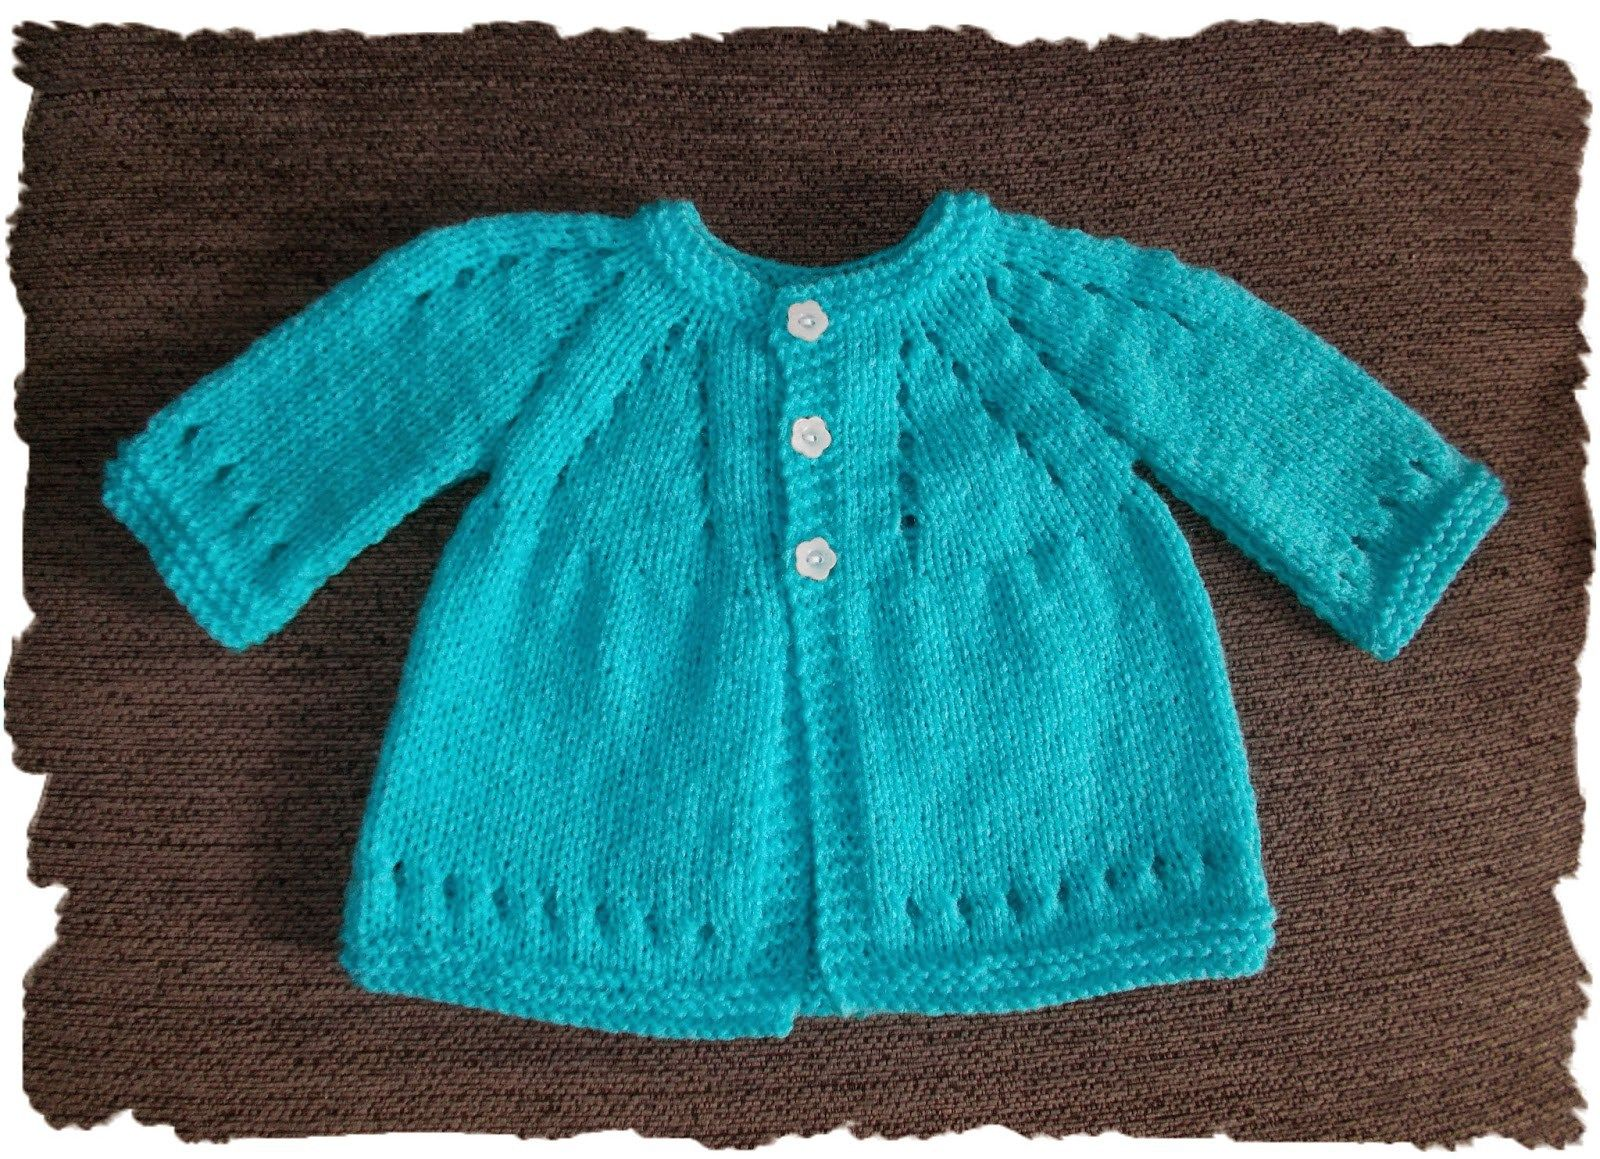 FREE Girls Sweater Knitting Patterns | Knitting patterns, Patterns ...